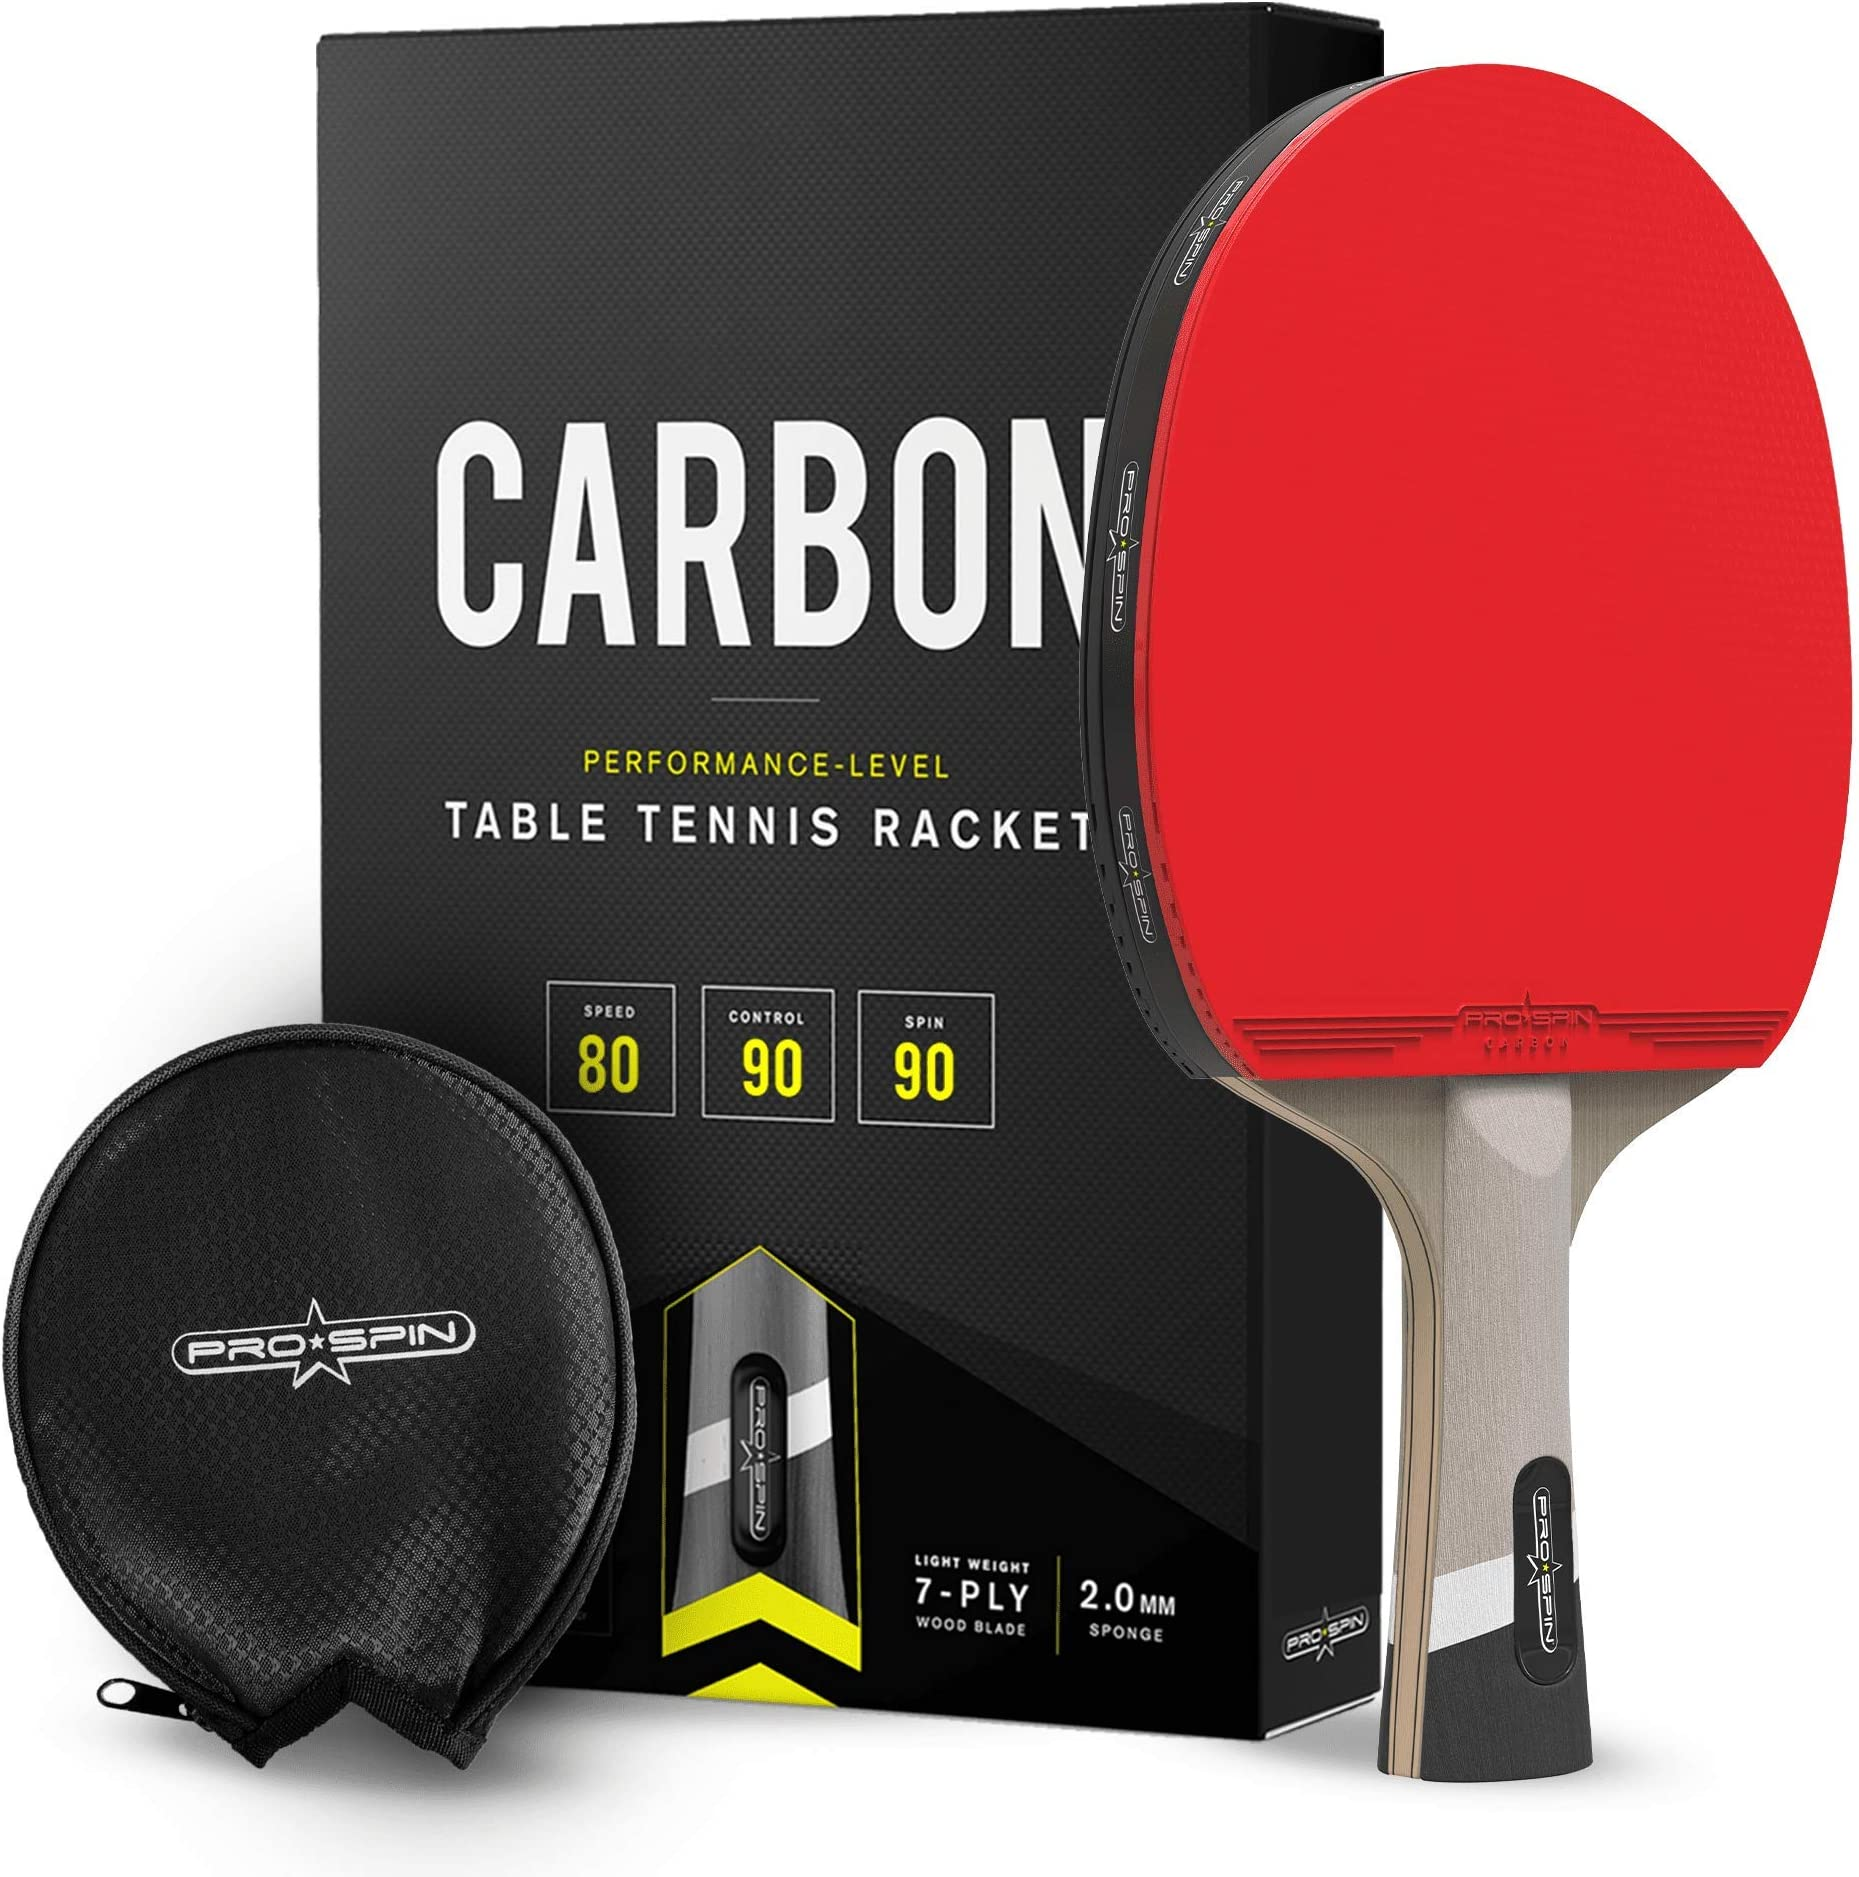 PRO SPIN Ping Pong Paddle with Carbon Fiber   7-Ply Blade, Offensive Rubber, 2.0mm Sponge, Premium Rubber Protector Case   Improve Your Game with The Elite Series Carbon Table Tennis Racket